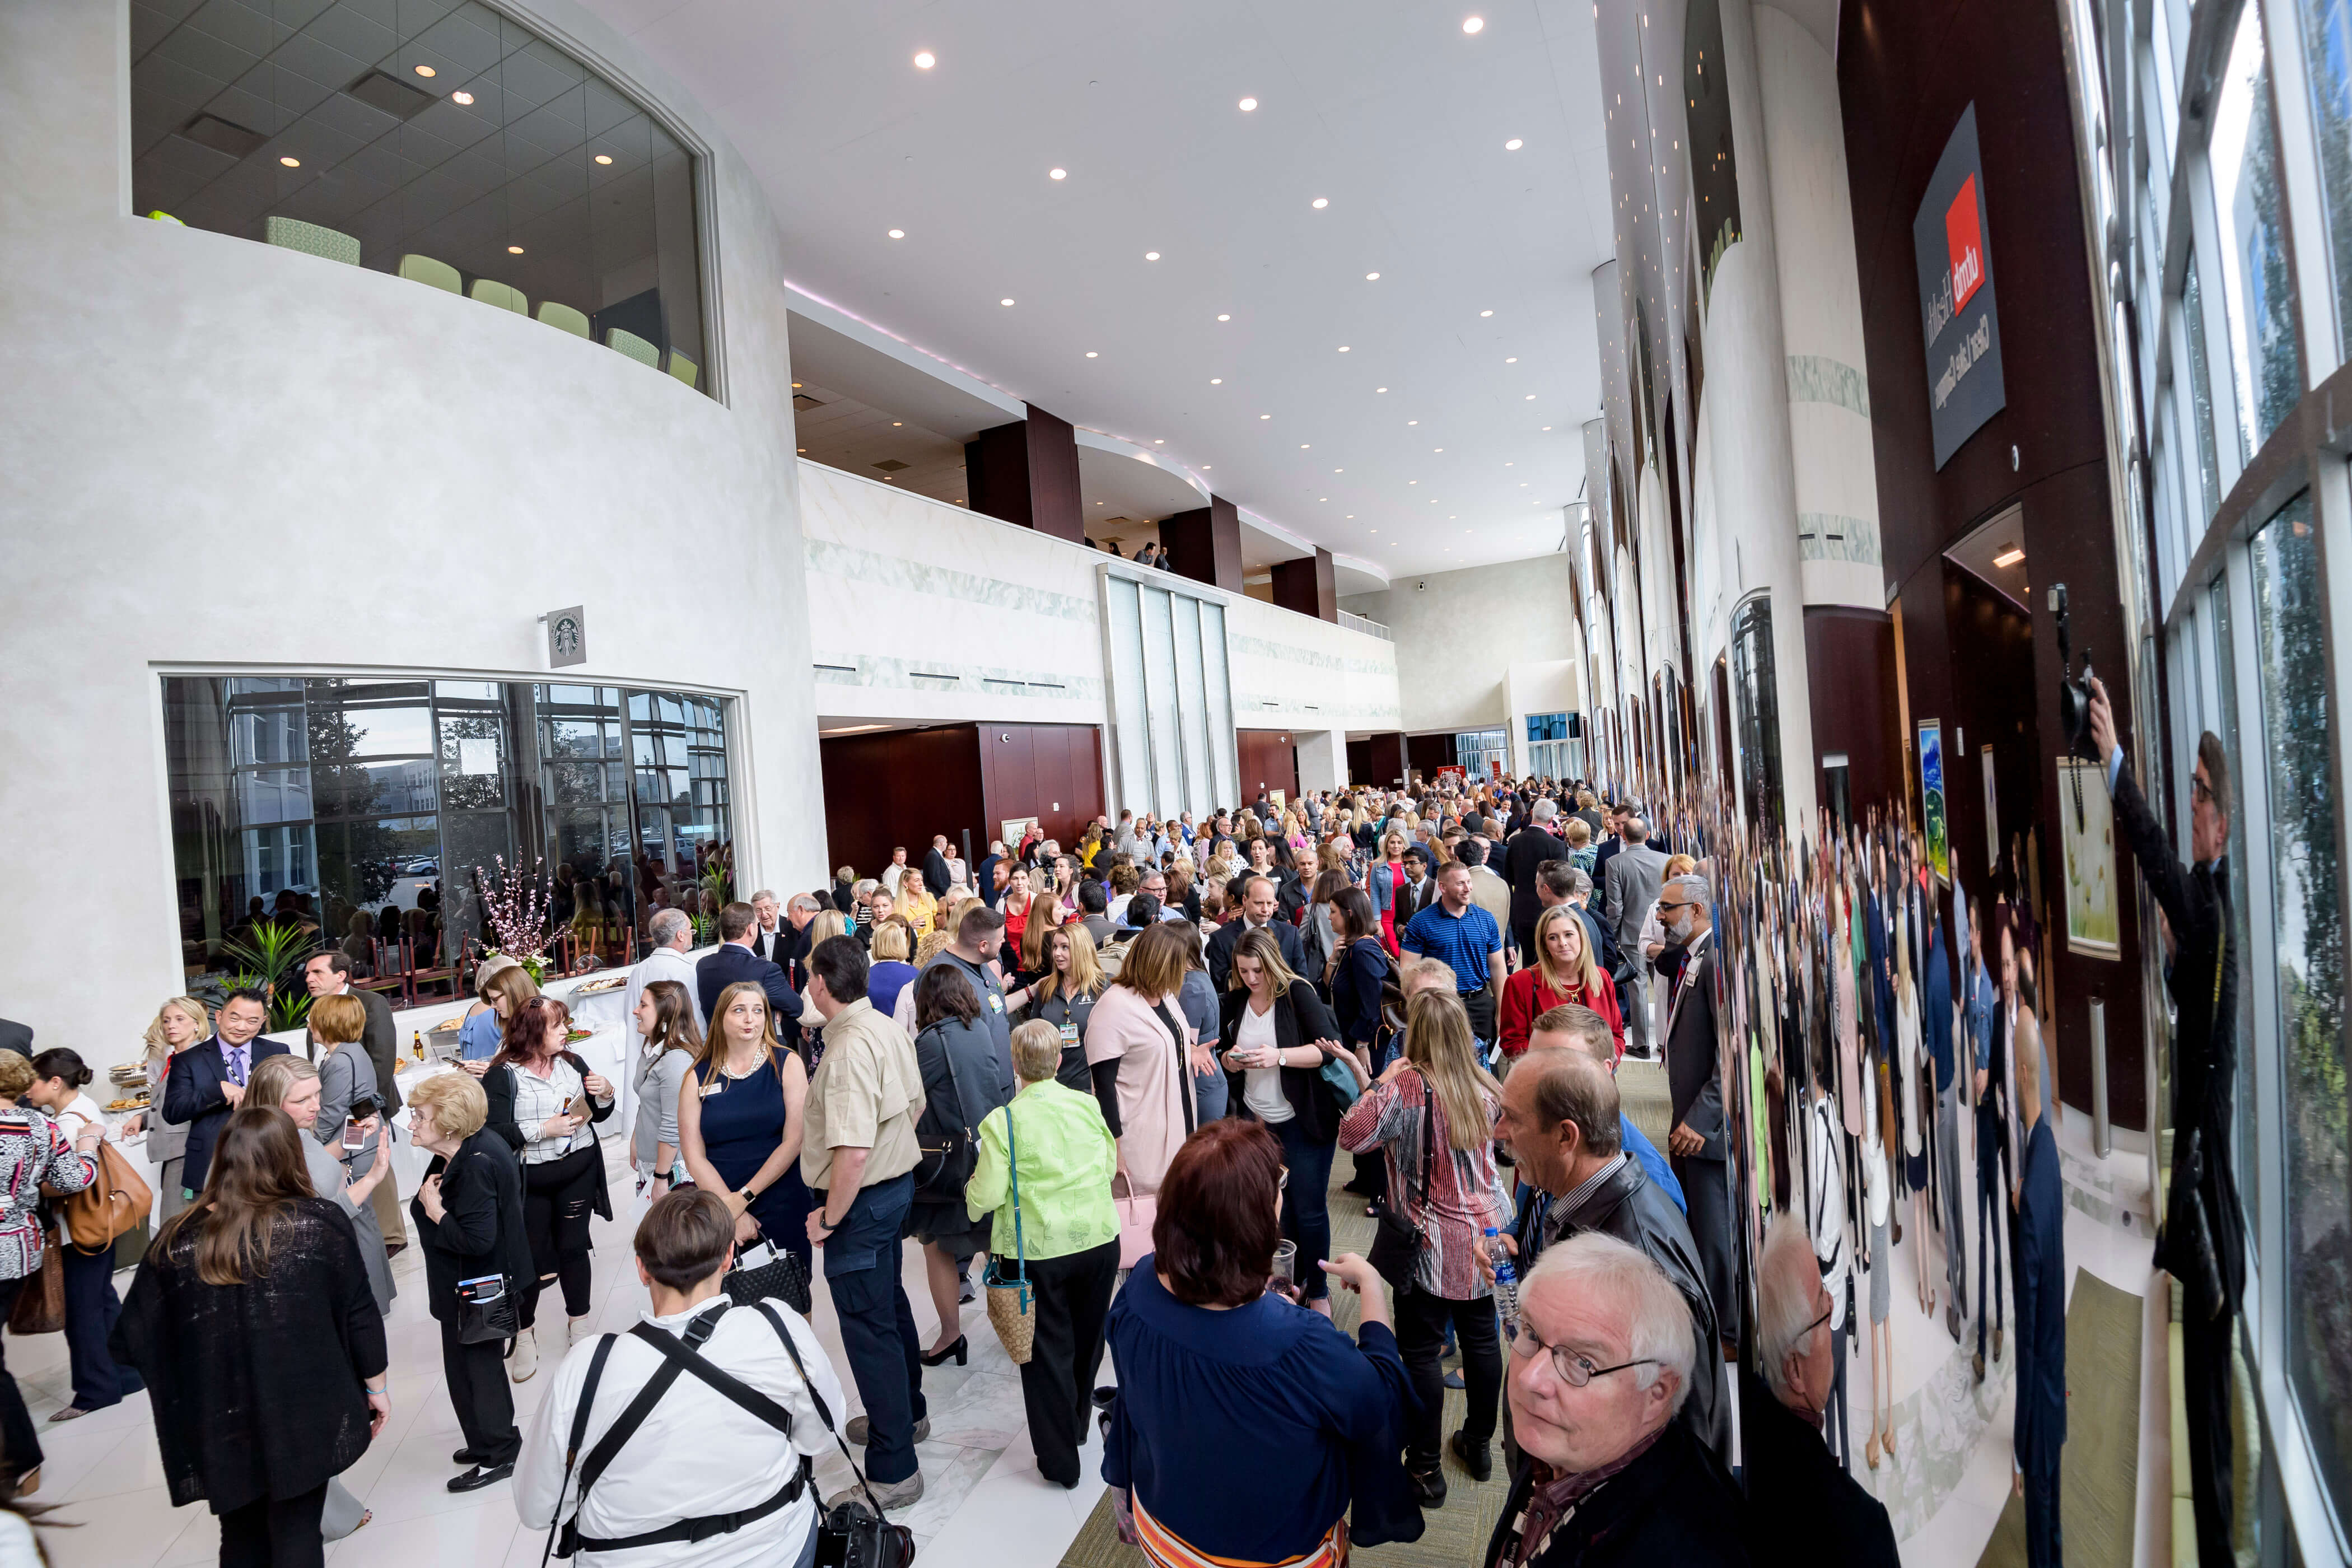 Attendees view the main floor lobby of the UTMB Health Clear Lake Campus at 200 Blossom in Webster, Texas, during the grand opening celebration on March 20, 2019.